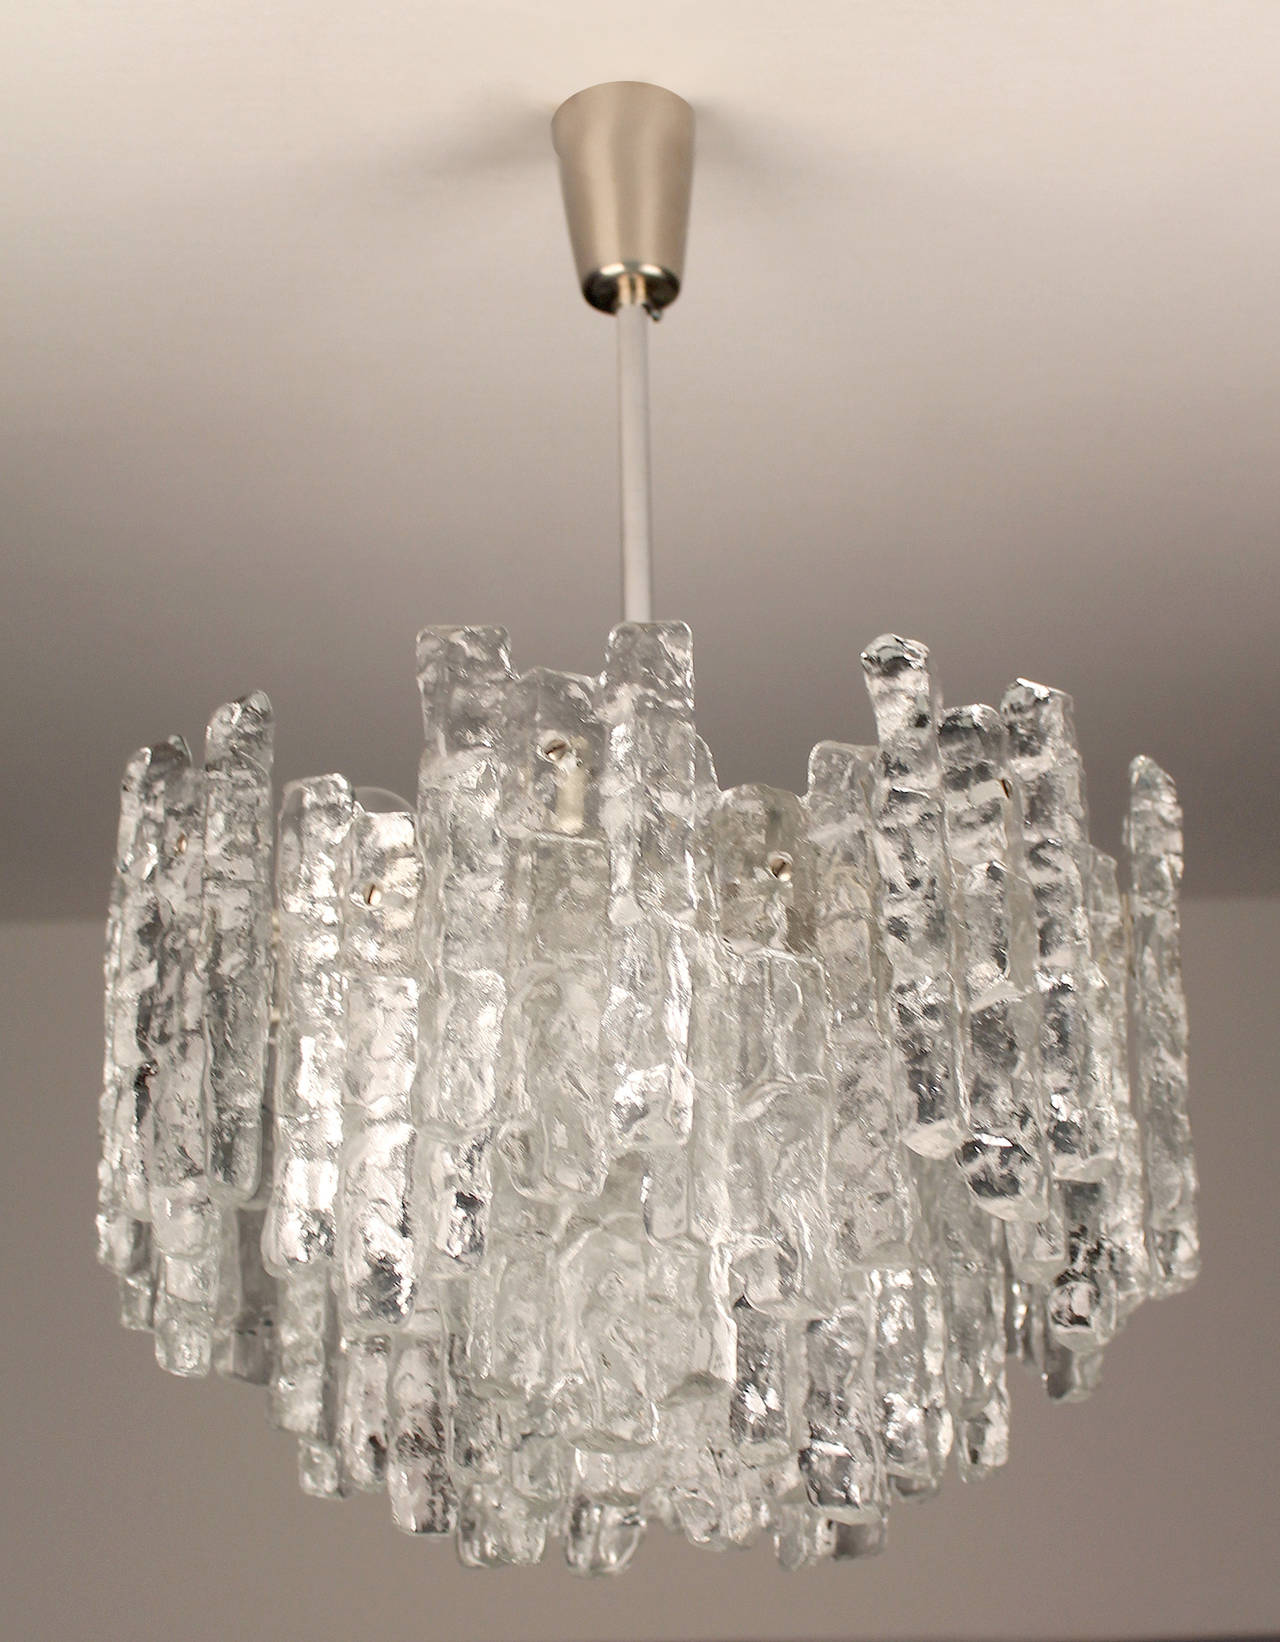 Large kalmar murano glass chandelier 1960s modernist design at 1stdibs kalmar murano glass chandelier circa 1960s austriaree tiers structure gathering 28 structured aloadofball Images